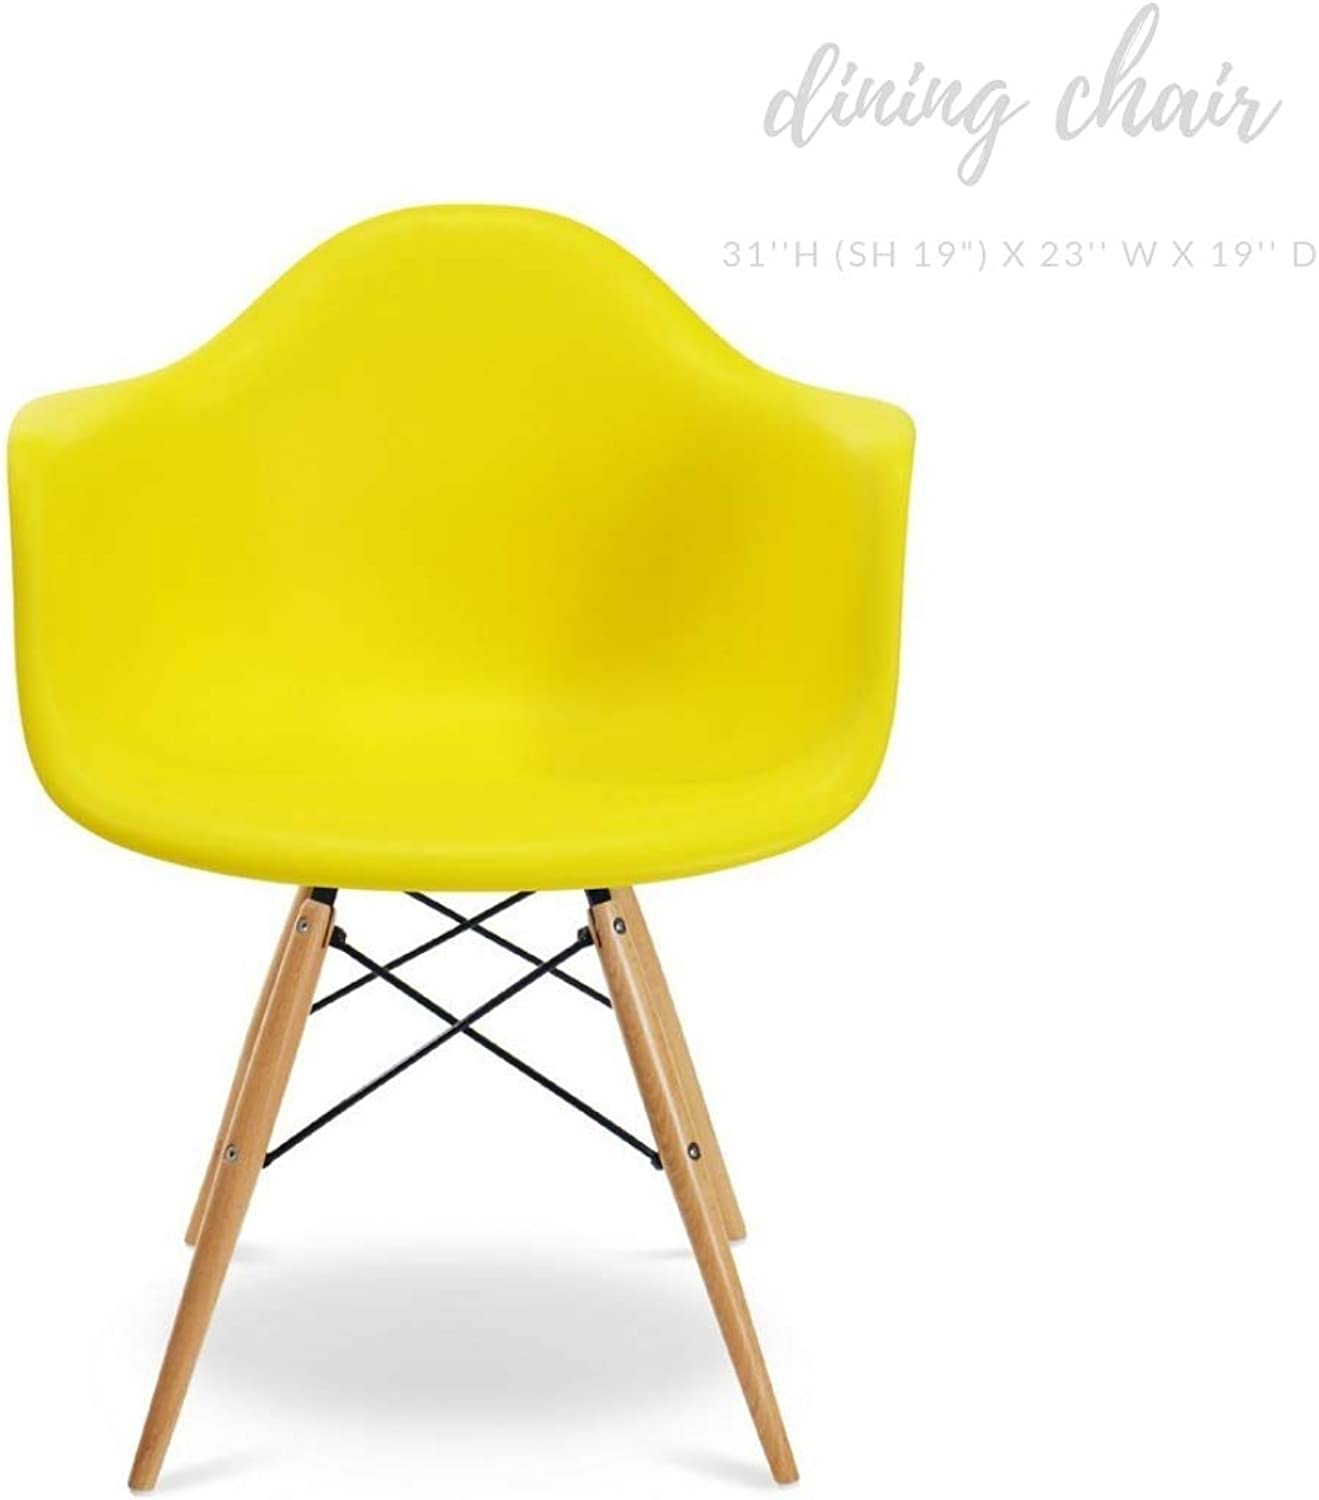 Take Me Home Furniture Eiffel Style Bucket Chair with Wood Legs, Yellow, Dining Chair